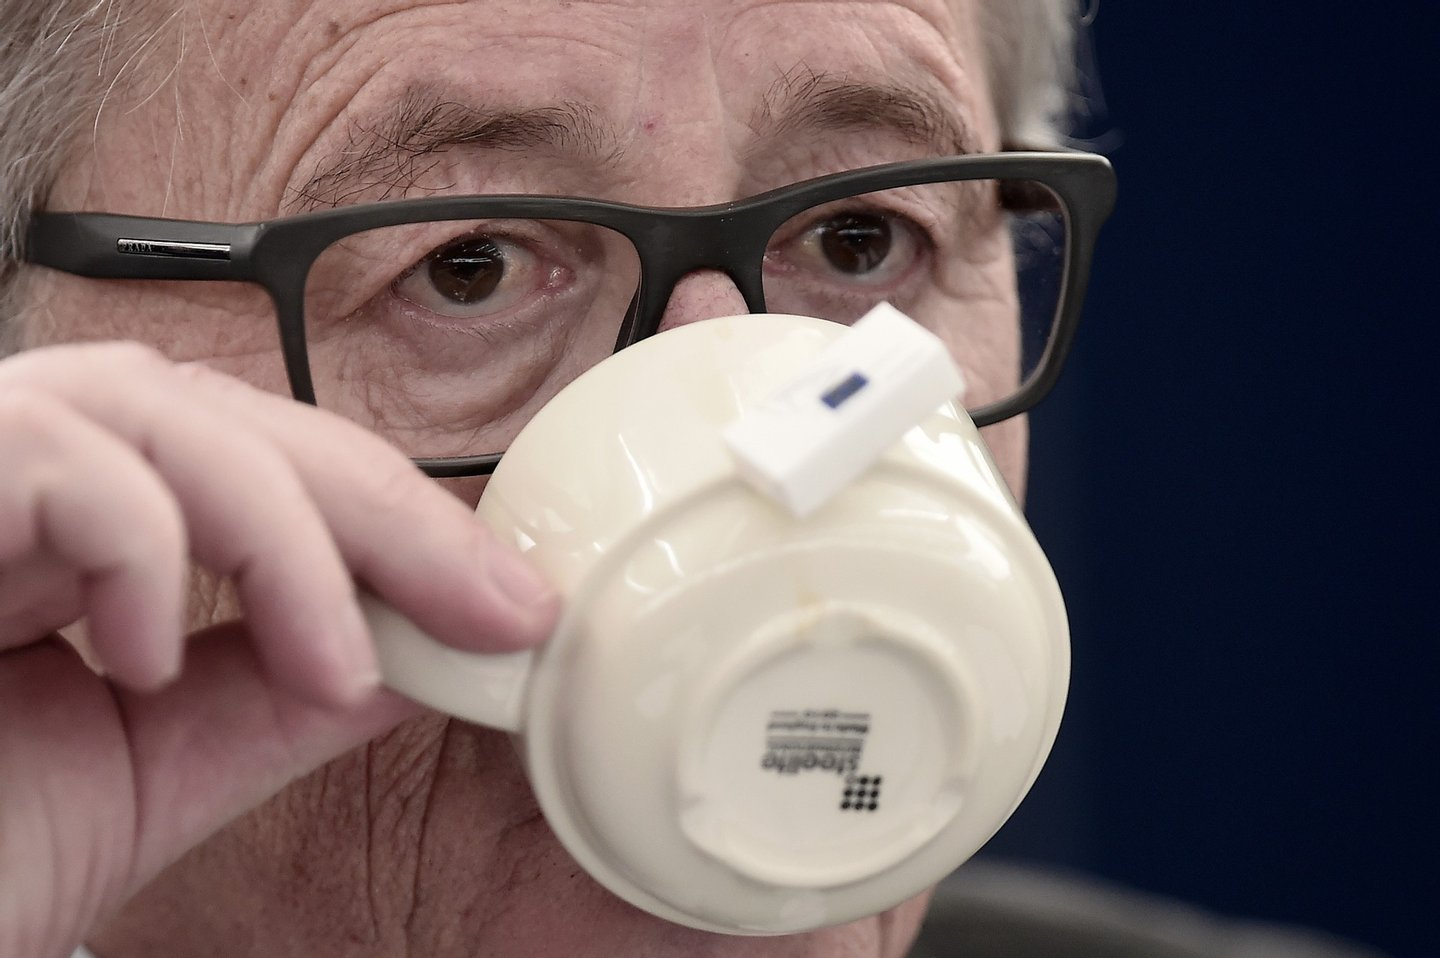 European Commission's President Jean-Claude Juncker takes a drink as he attends a debate on the 13 November terrorist attacks in Paris and subsequent police and military operations at the European Parliament in Strasbourg, eastern France, on November 25, 2015. AFP PHOTO/FREDERICK FLORIN / AFP / FREDERICK FLORIN (Photo credit should read FREDERICK FLORIN/AFP/Getty Images)